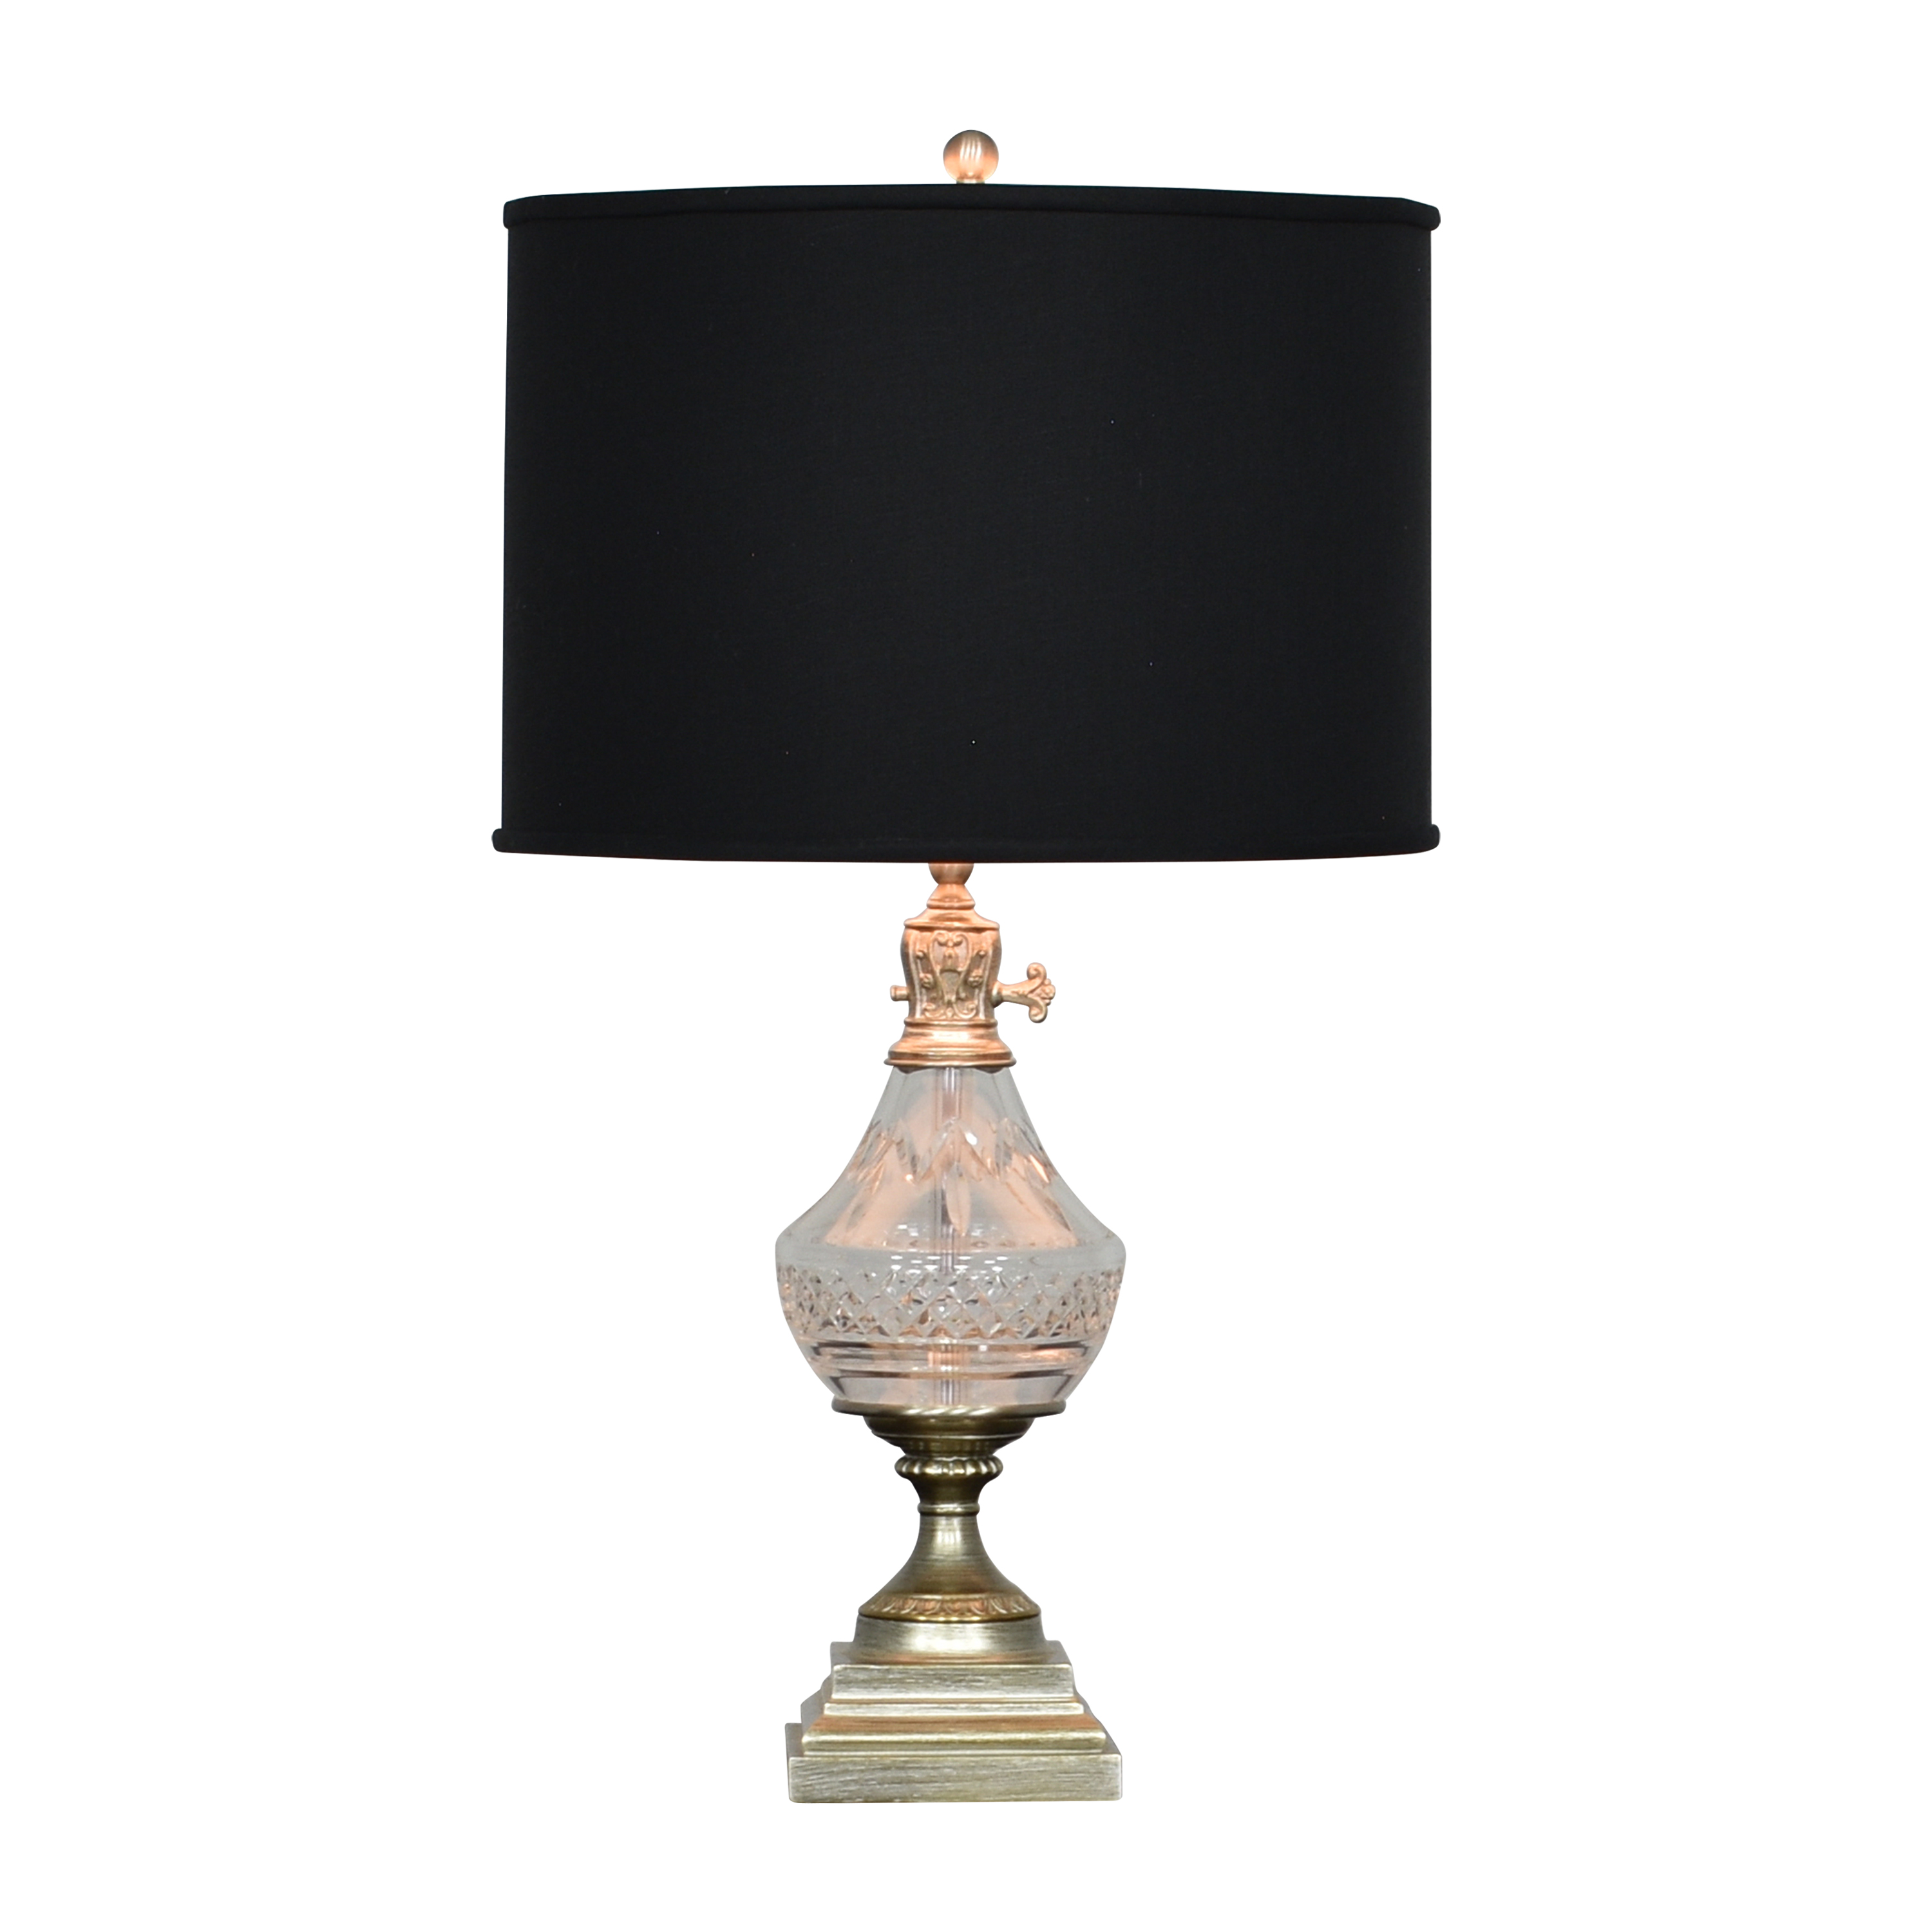 Waterford Waterford Table Lamp on sale